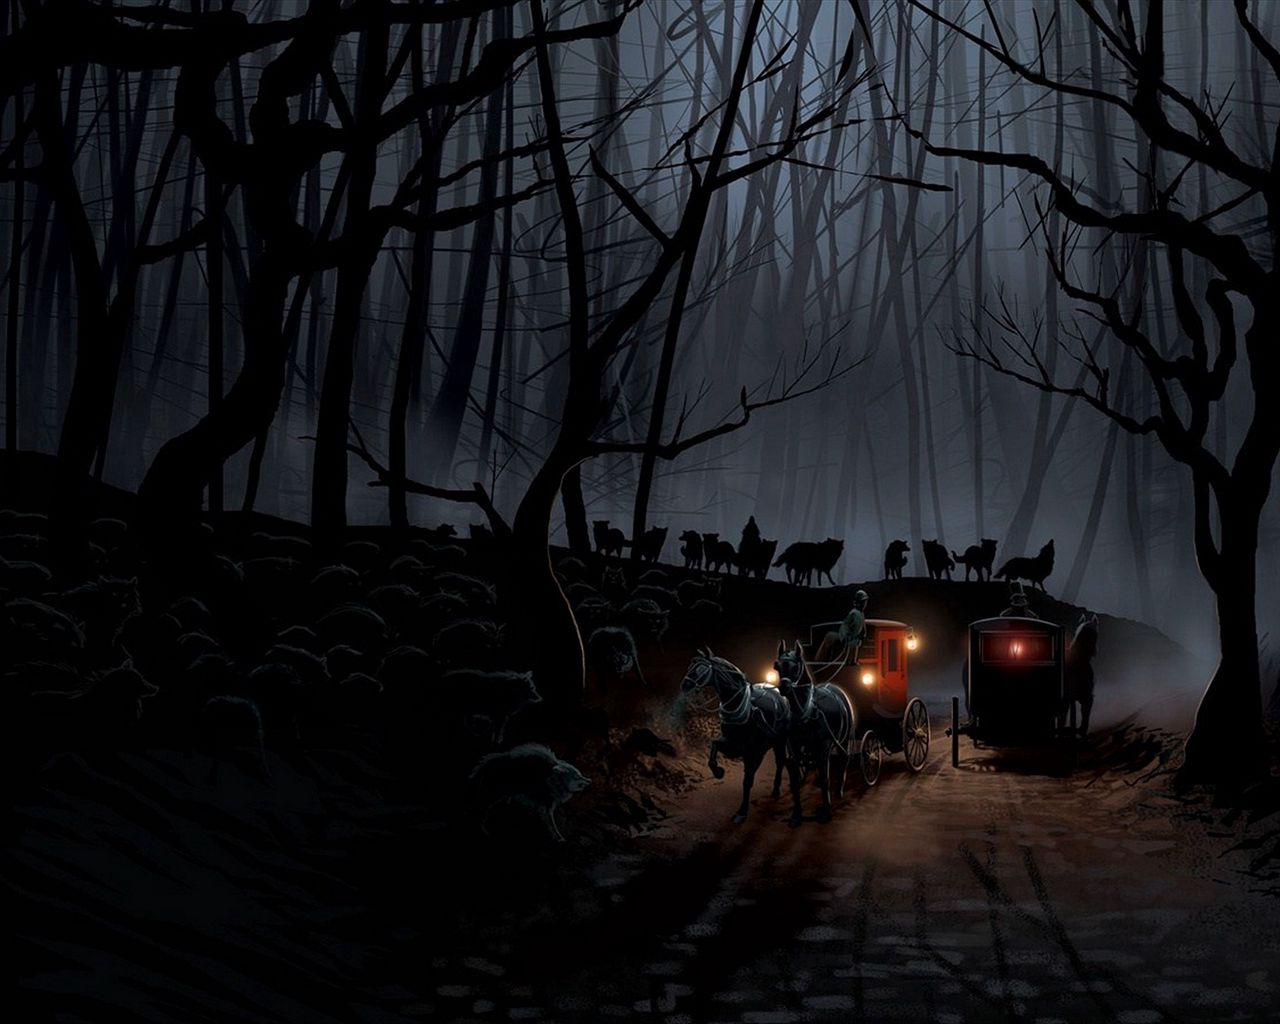 1280x1024 Wallpaper carriage, wood, night, wolves, flight